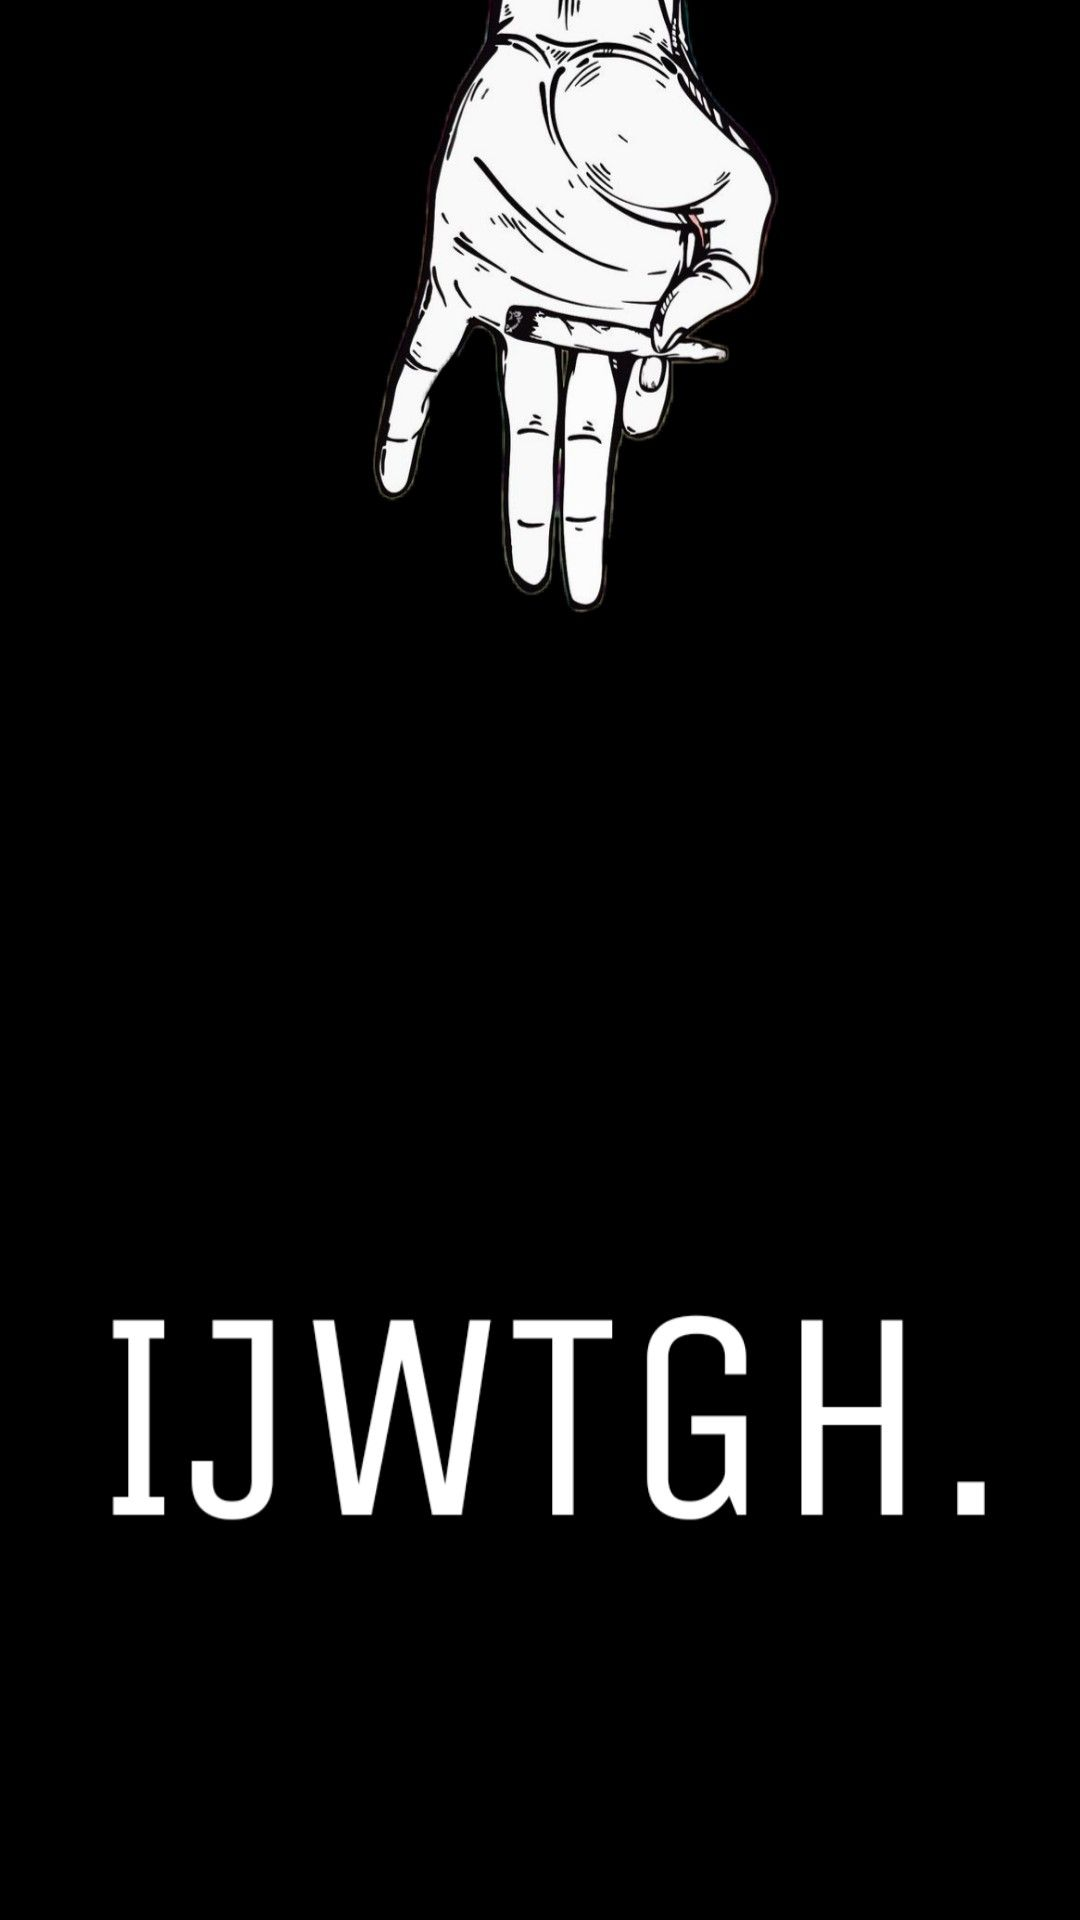 Ijwtgh I Just Want To Get High Smoke Wallpaper Iphone Wallpaper Trippy Pictures